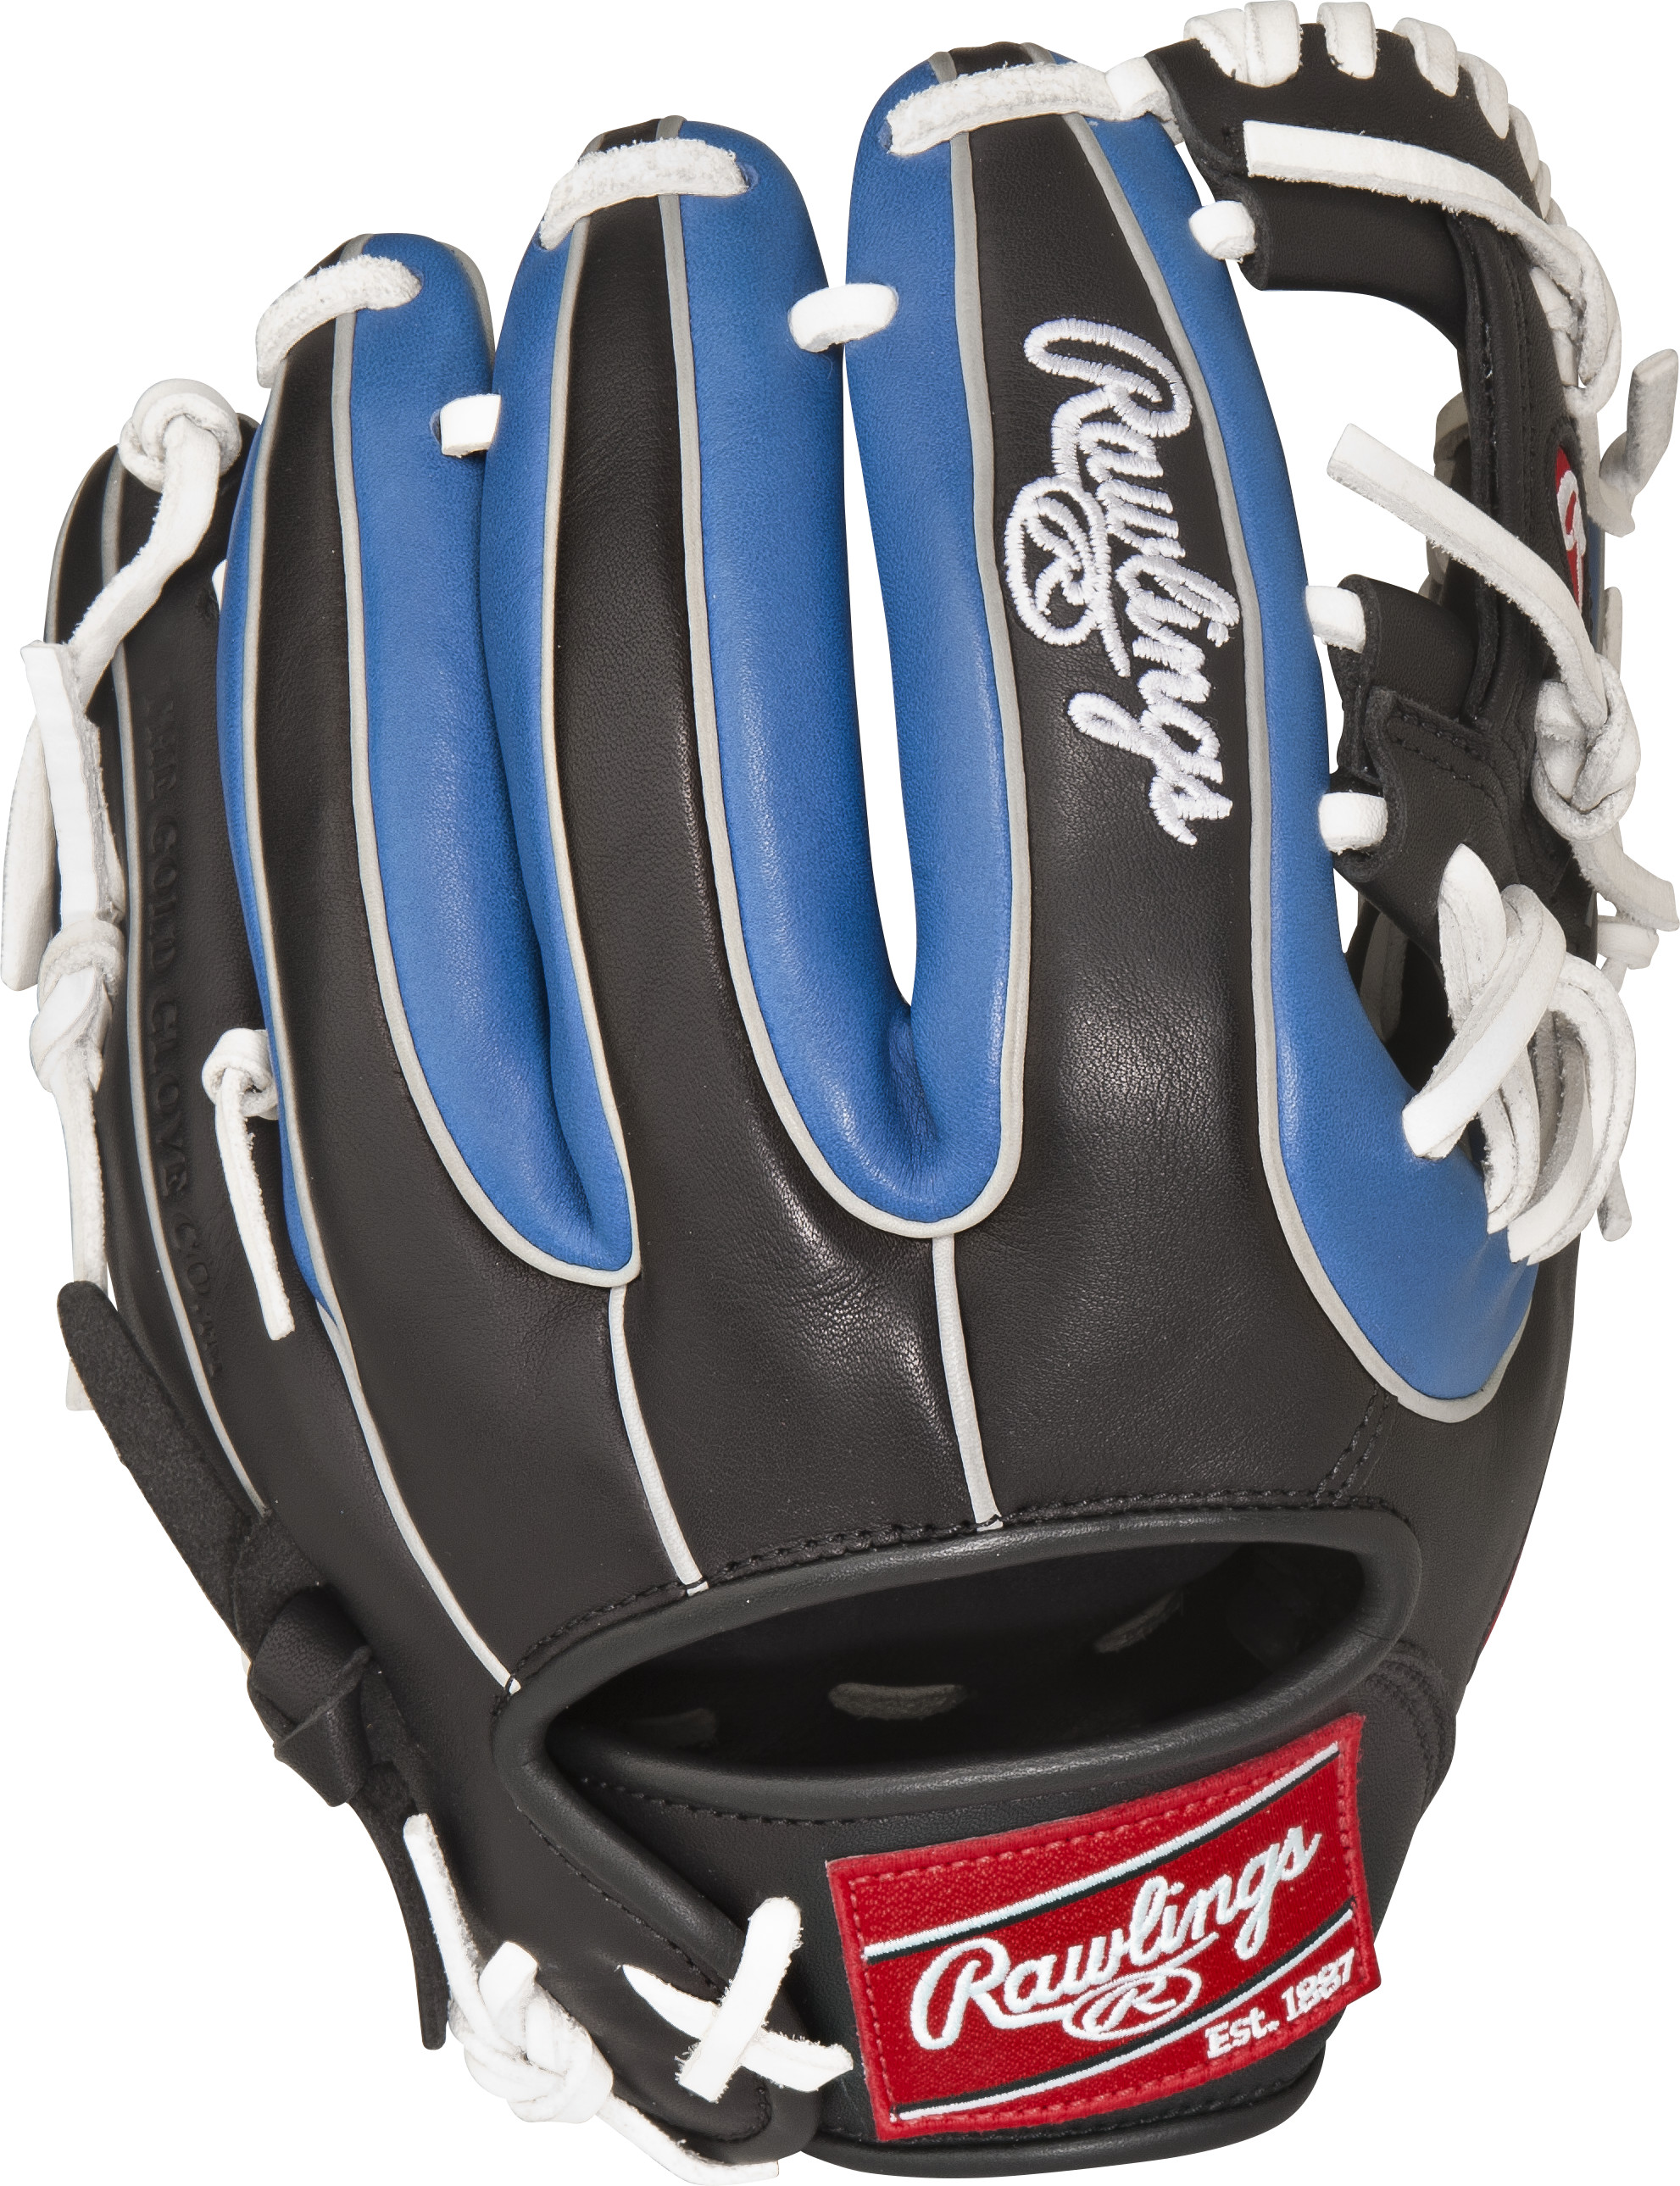 http://www.bestbatdeals.com/images/gloves/rawlings/GXLE312-2BR_back.jpg